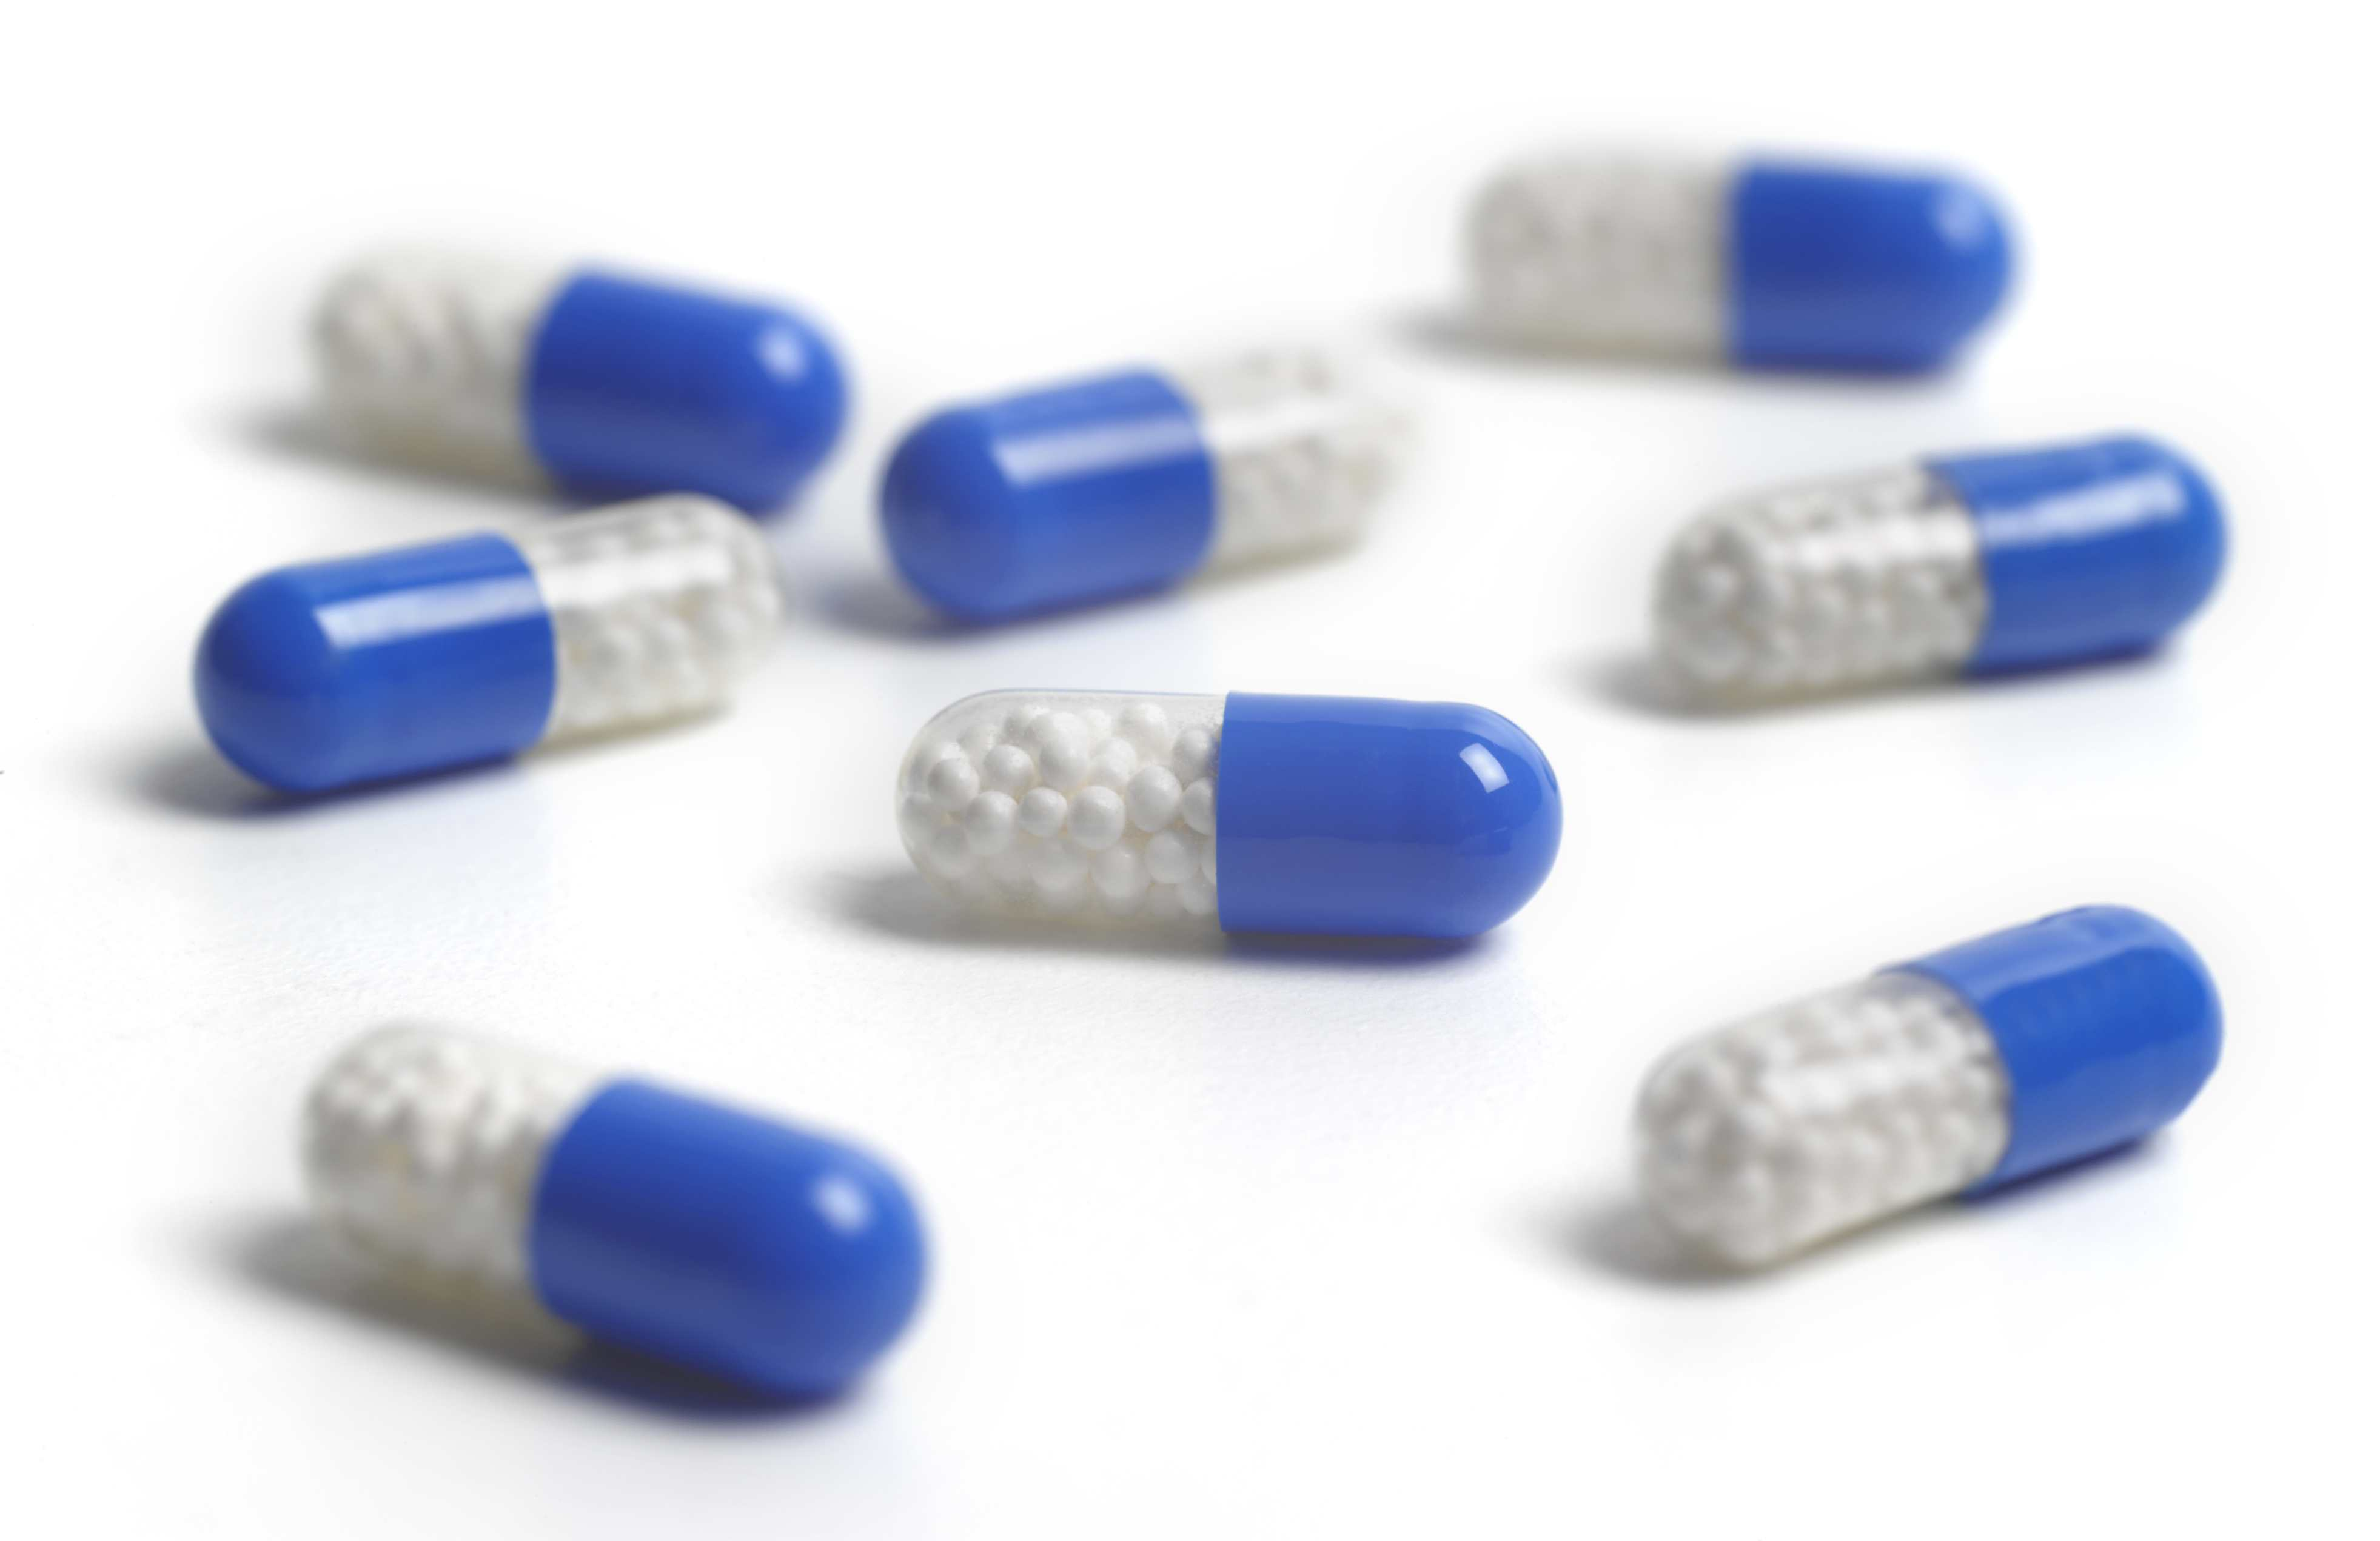 Pill capsules laying on a white counter